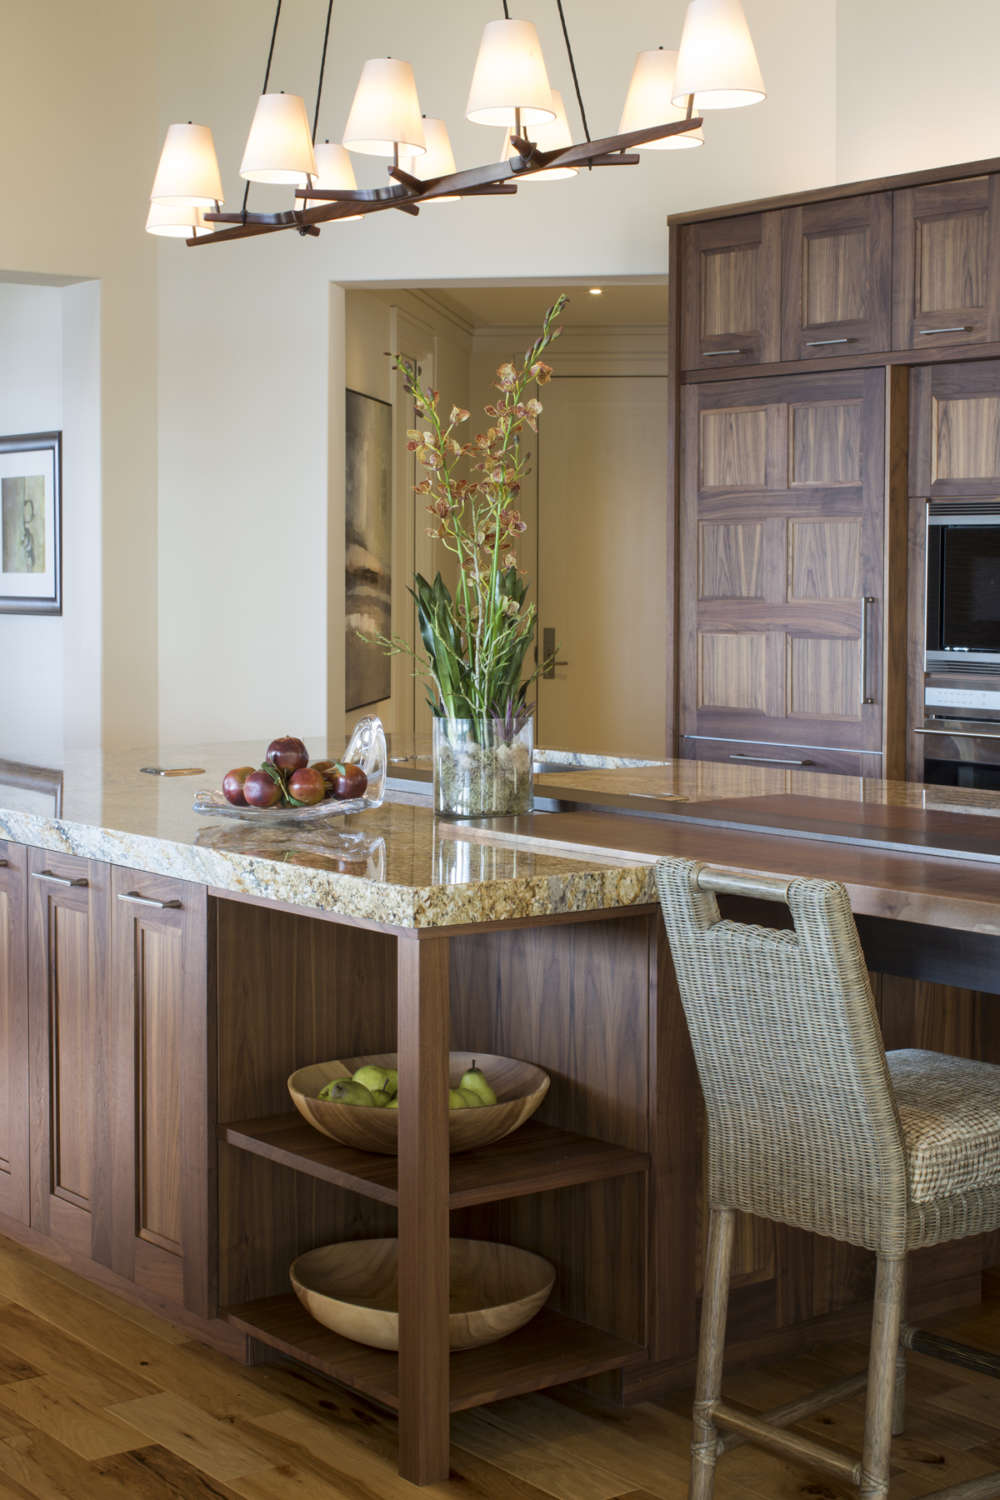 Transitional kitchen features fully custom frameless, shaker style Rutt Recency cabinets in natural walnut and a large isalnd with seating. The warm-toned granite complements the graining of the walnut cabinets. Design by RitaLuisa Garces of Bilotta Kitchens.